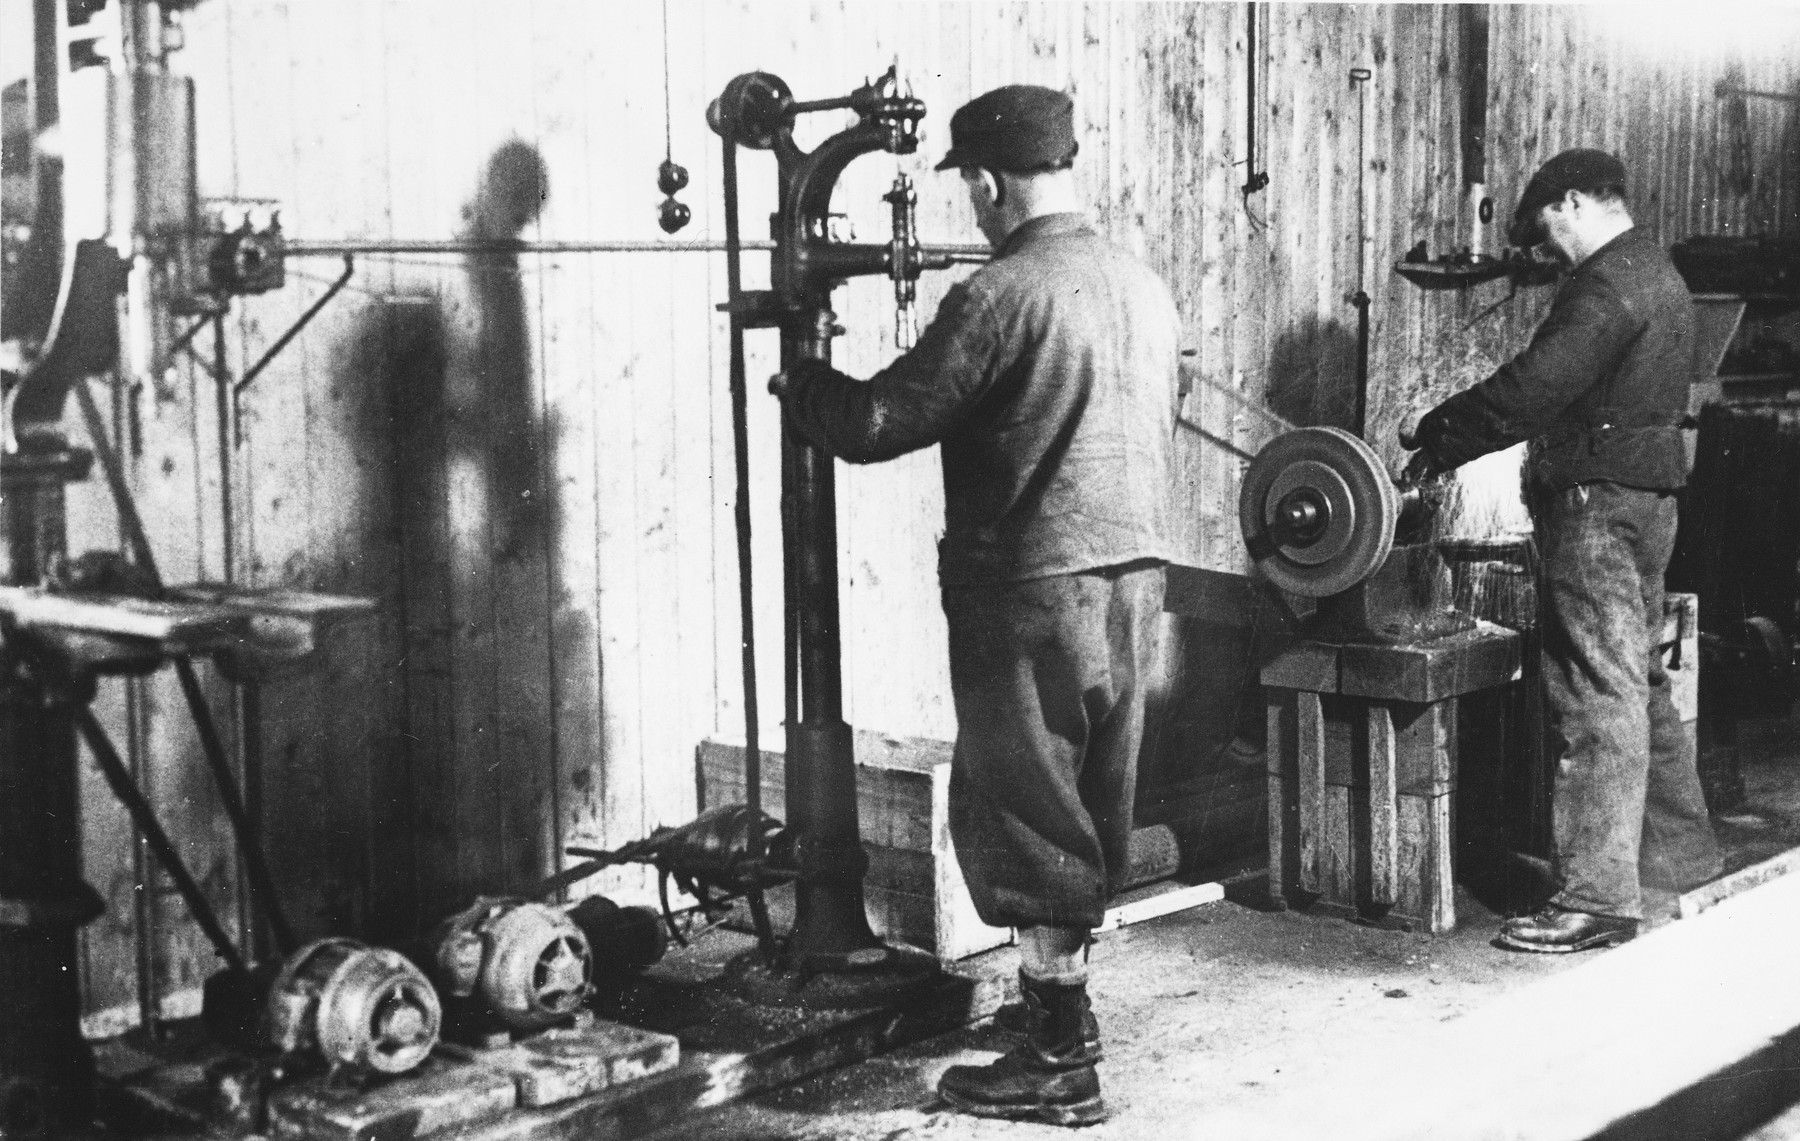 Prisoners work in a machine shop at a Slovak labor camp.